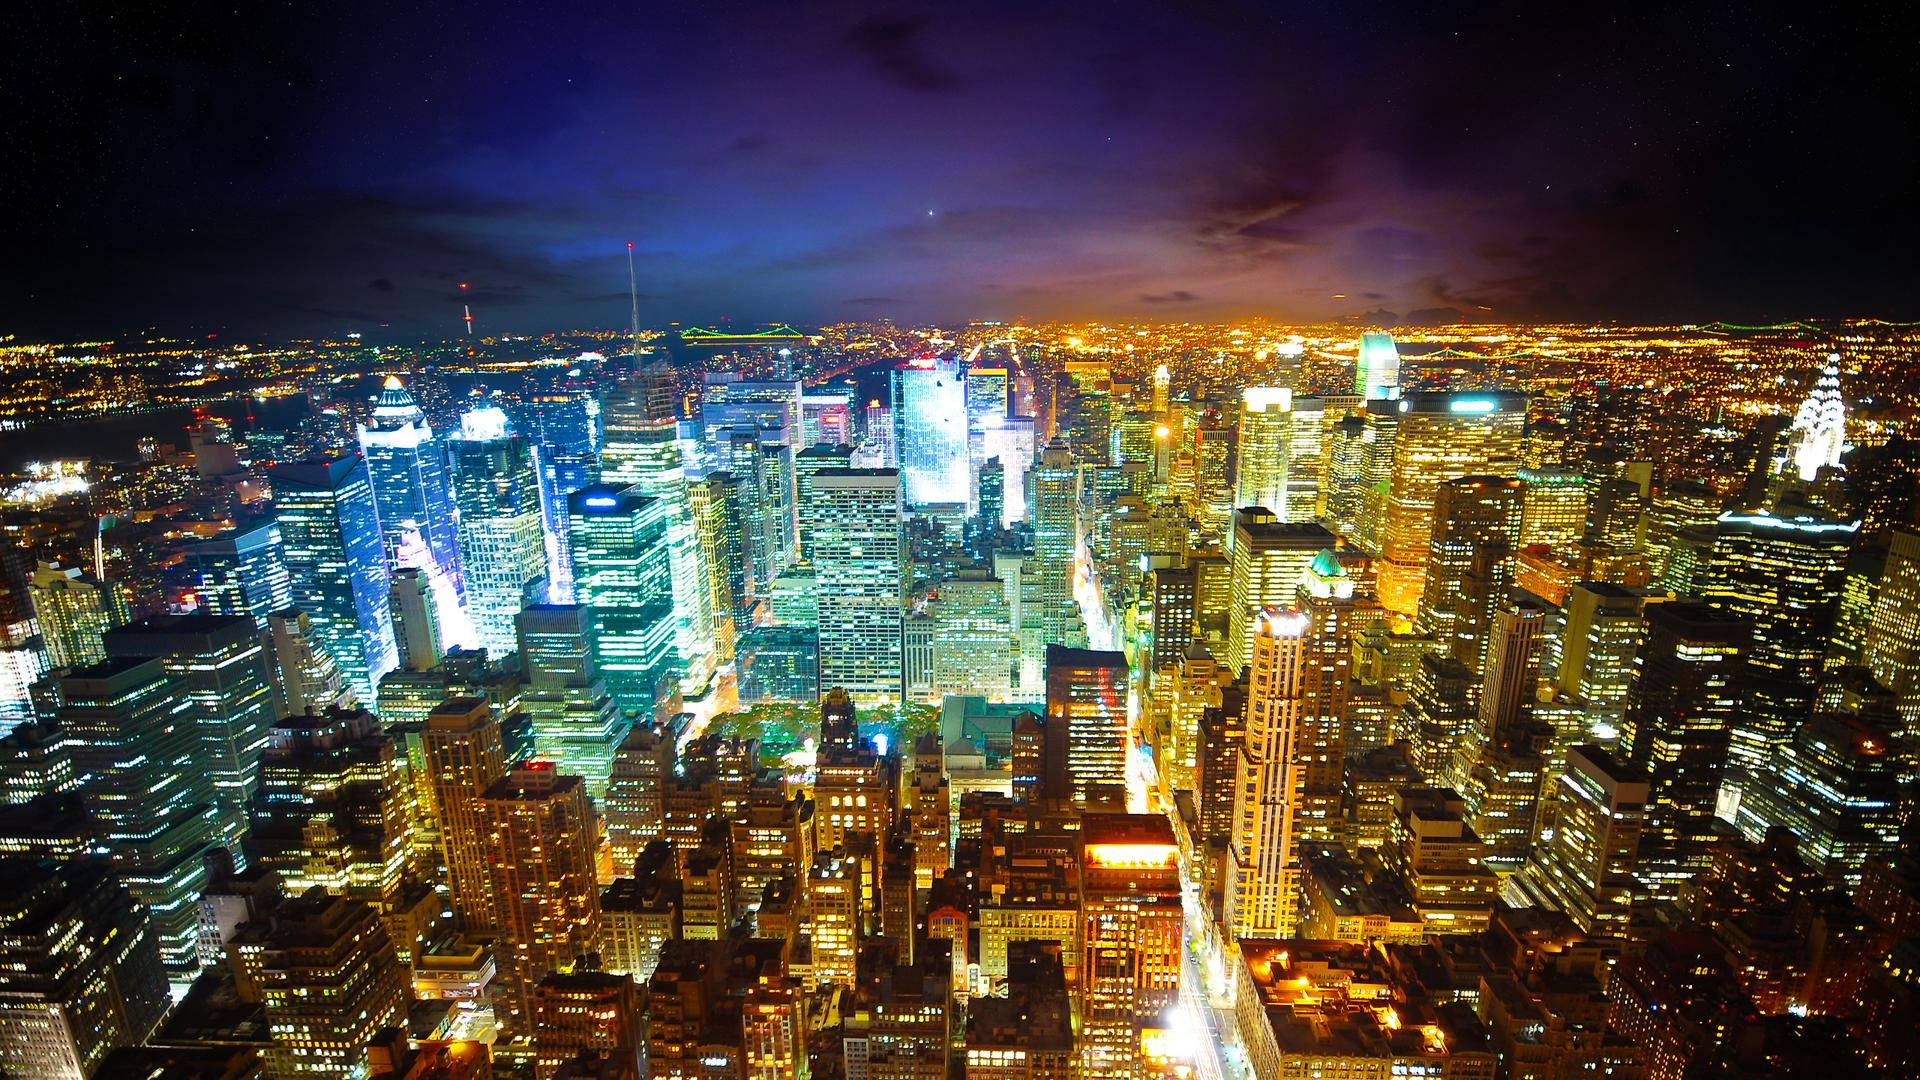 New York City Skyline At Night City Lights At Night City Wallpaper Night City